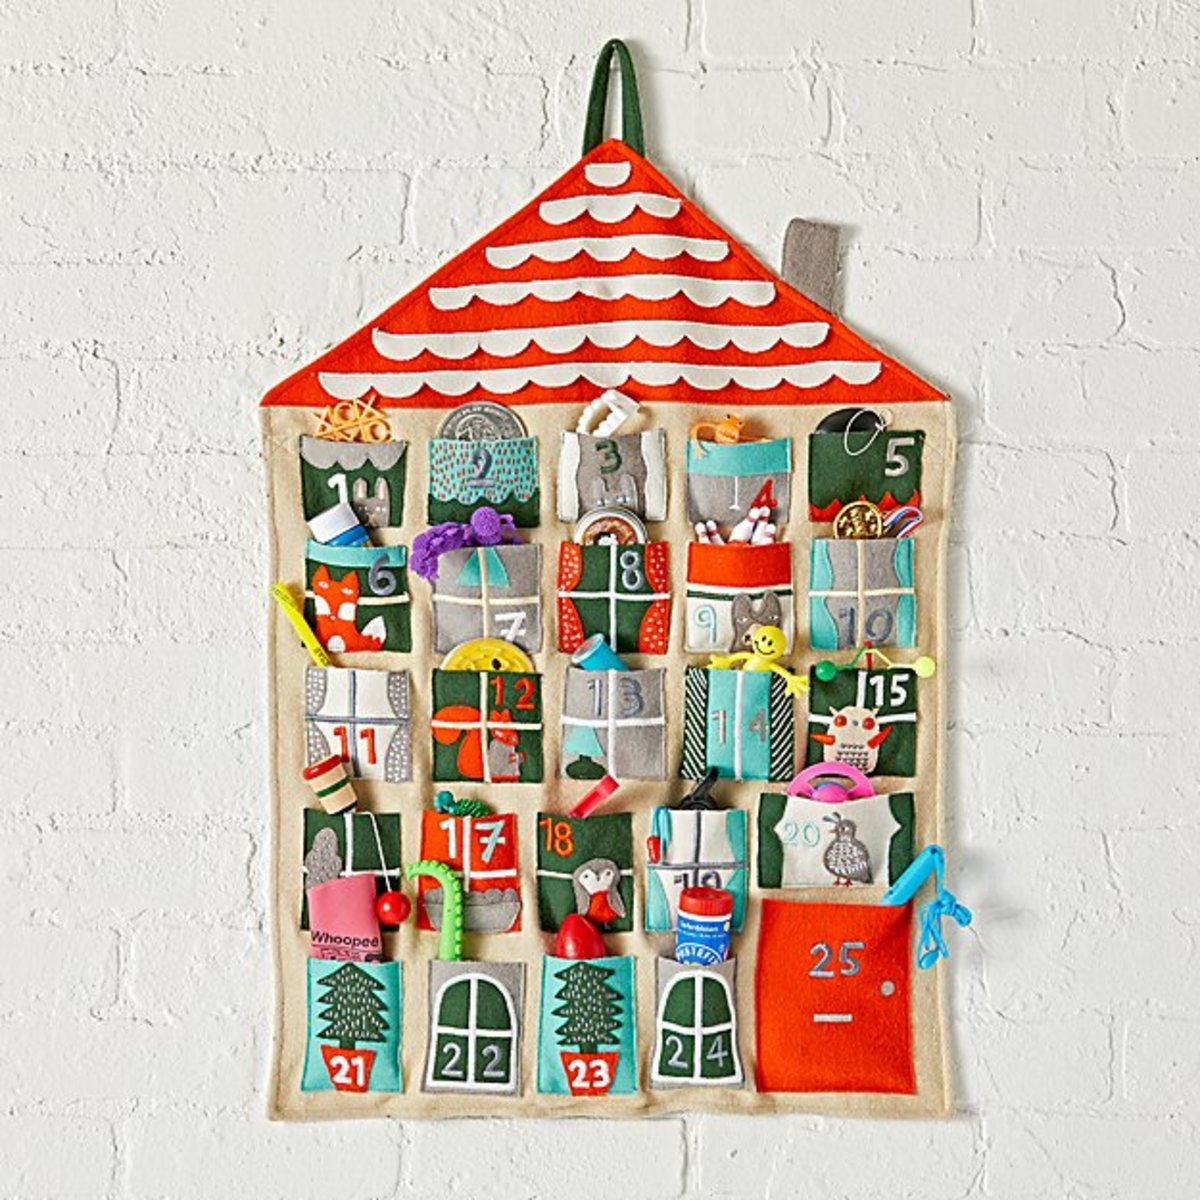 Land of Nod Advent Calendar, $118